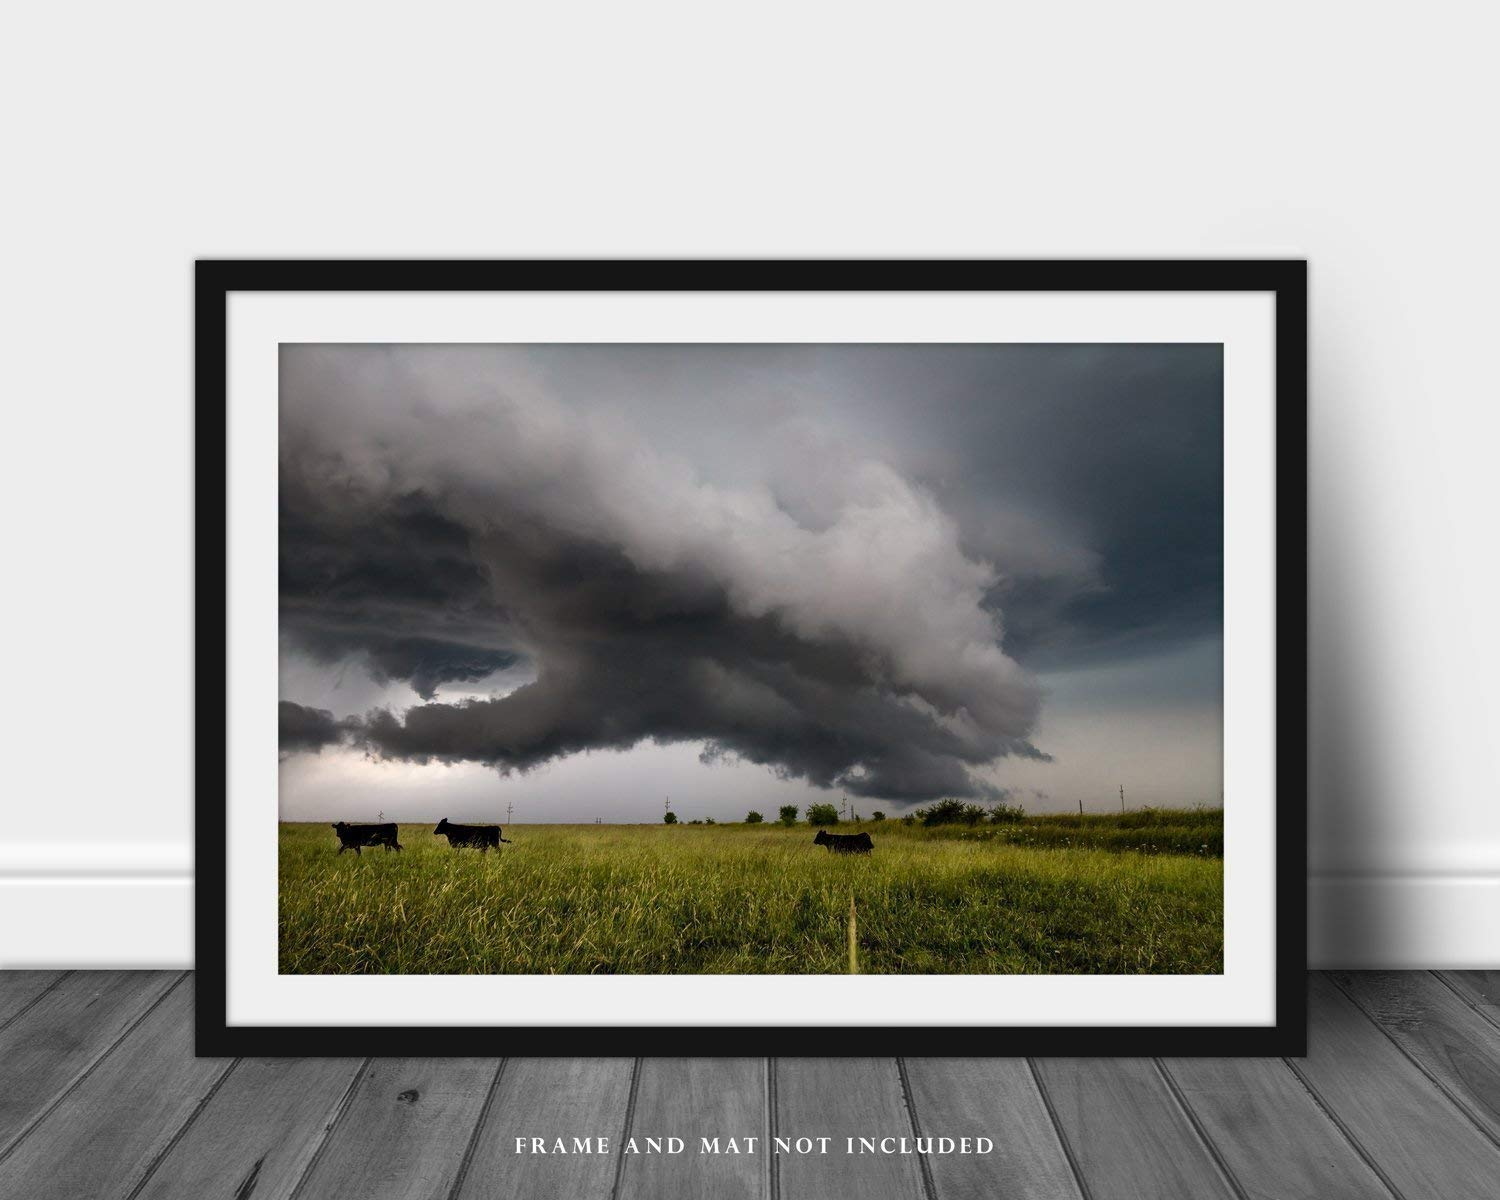 Black Angus Cattle Photography Print Picture of Cattle Moving Away from Thunderstorm Western Farm and Ranch Cow Wall Art Decor for Home Decoration 5x7 to 30x45